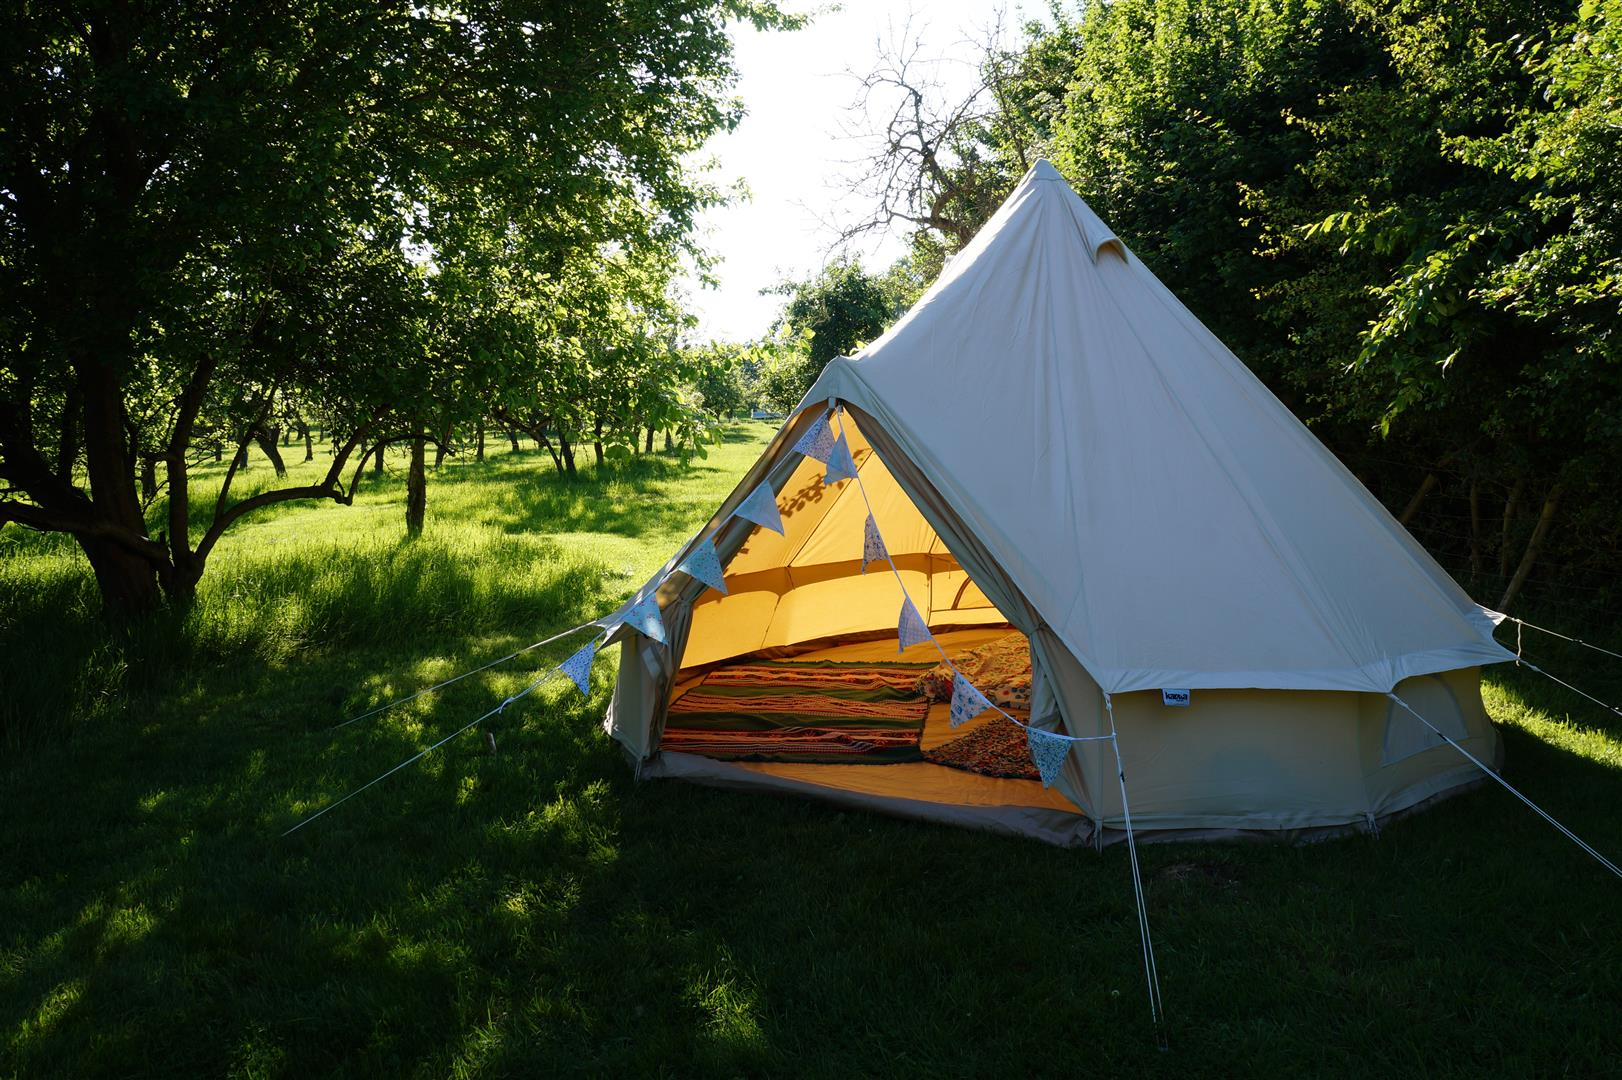 The Bell Tents & The Orchard Getaway u2013 Yurt and Bell Tent Glamping in the Vale of ...